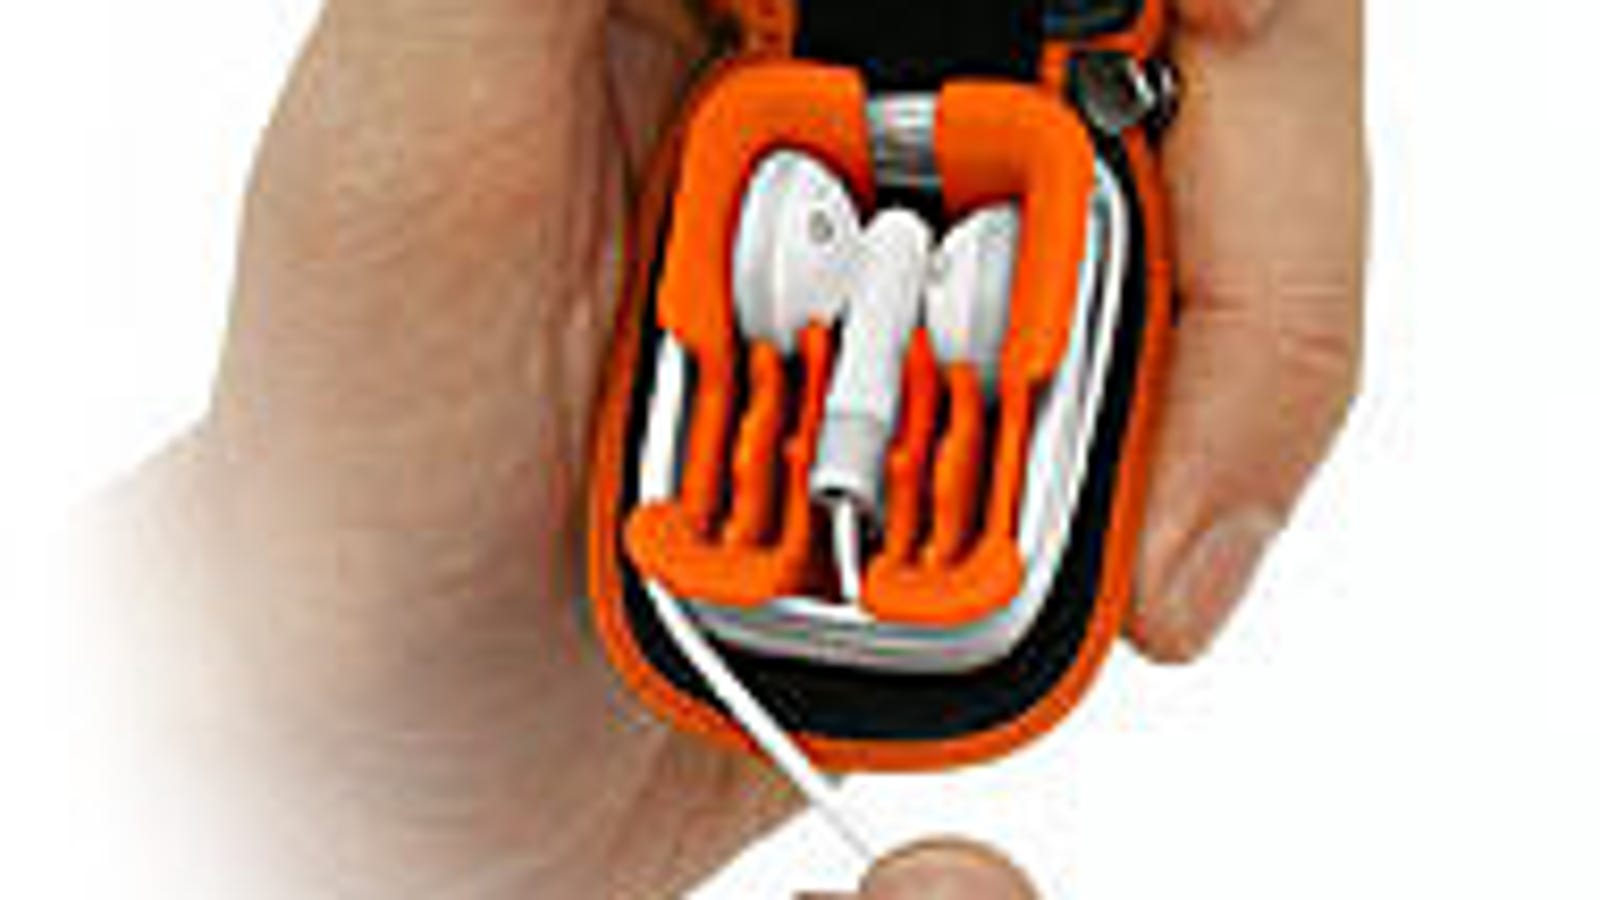 earbud plantronics explorer - SendStation Ear Buddy